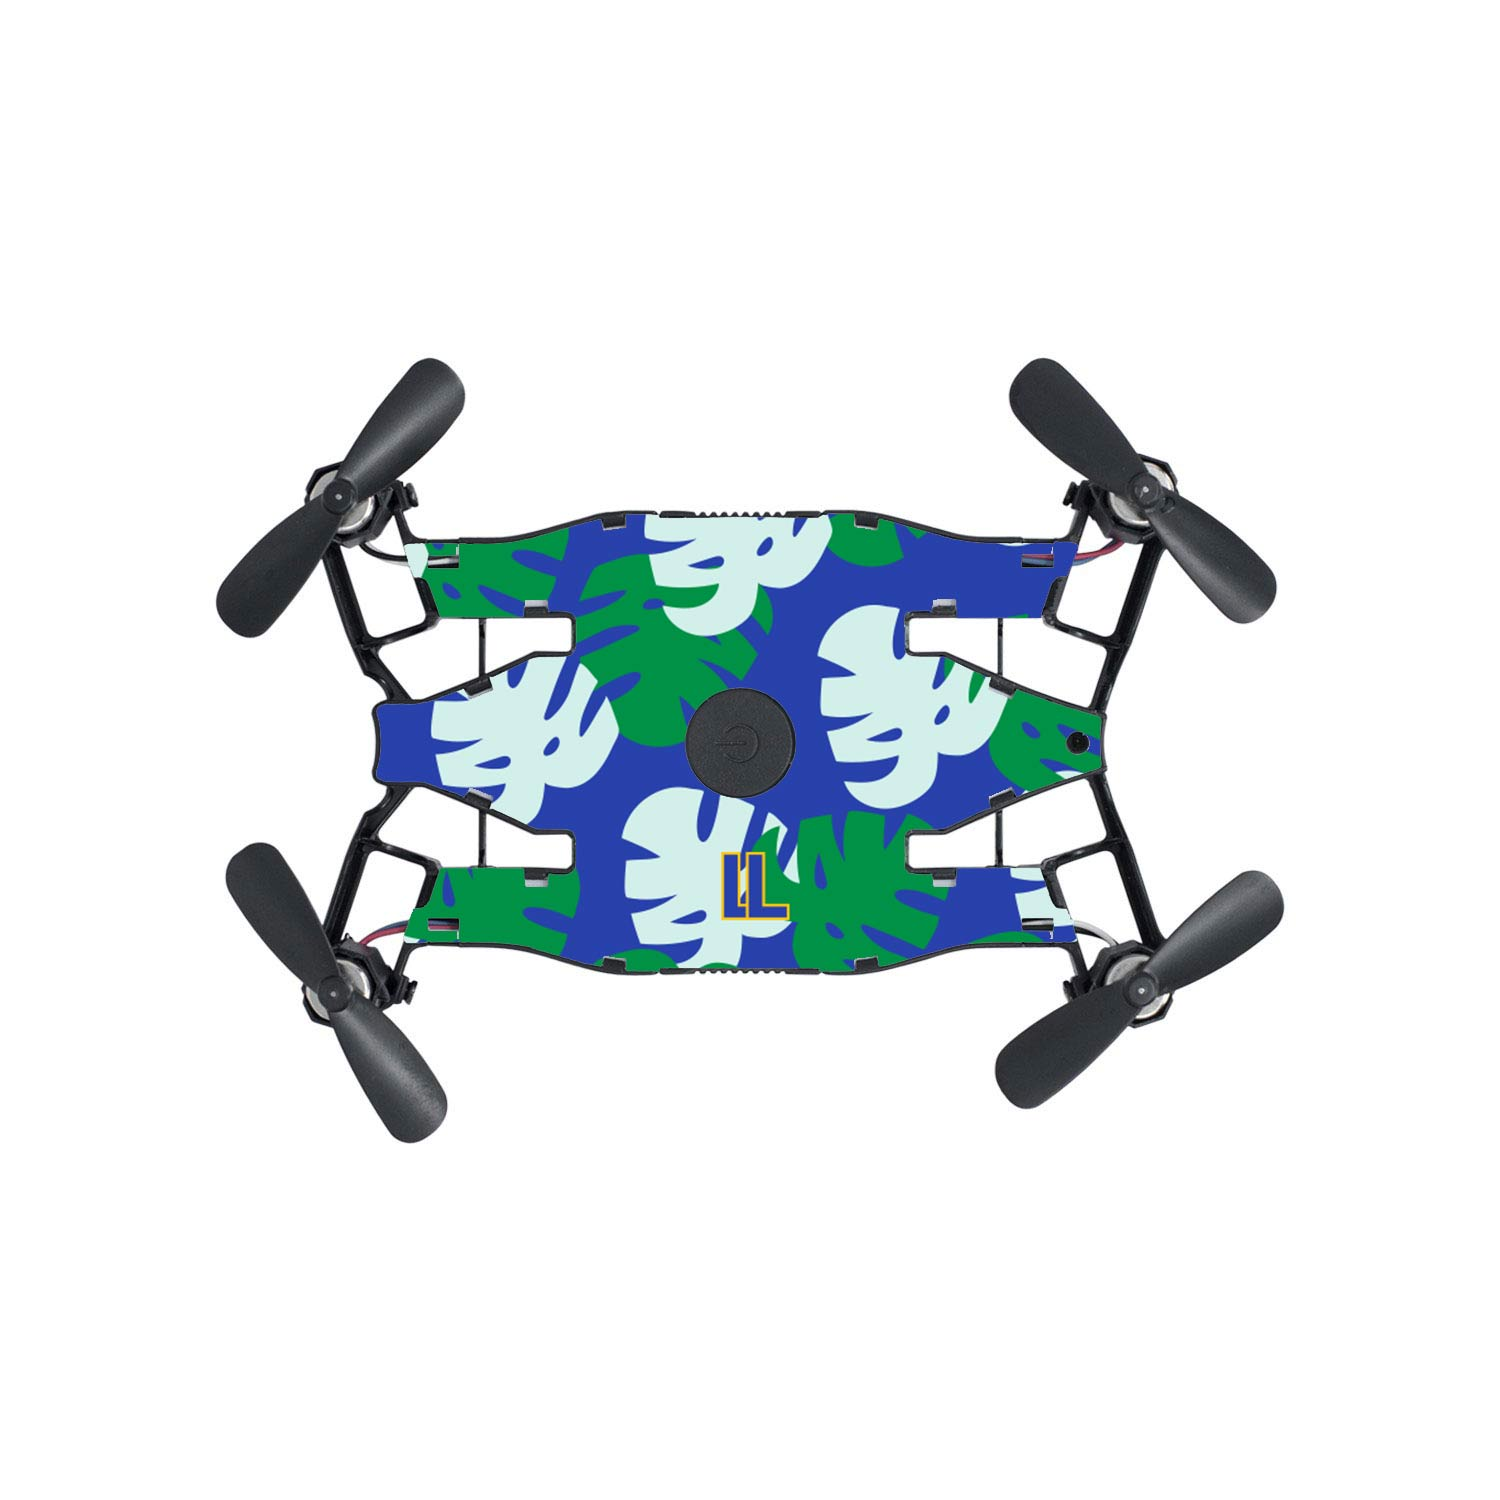 146684 mini selfie drone full color imprint